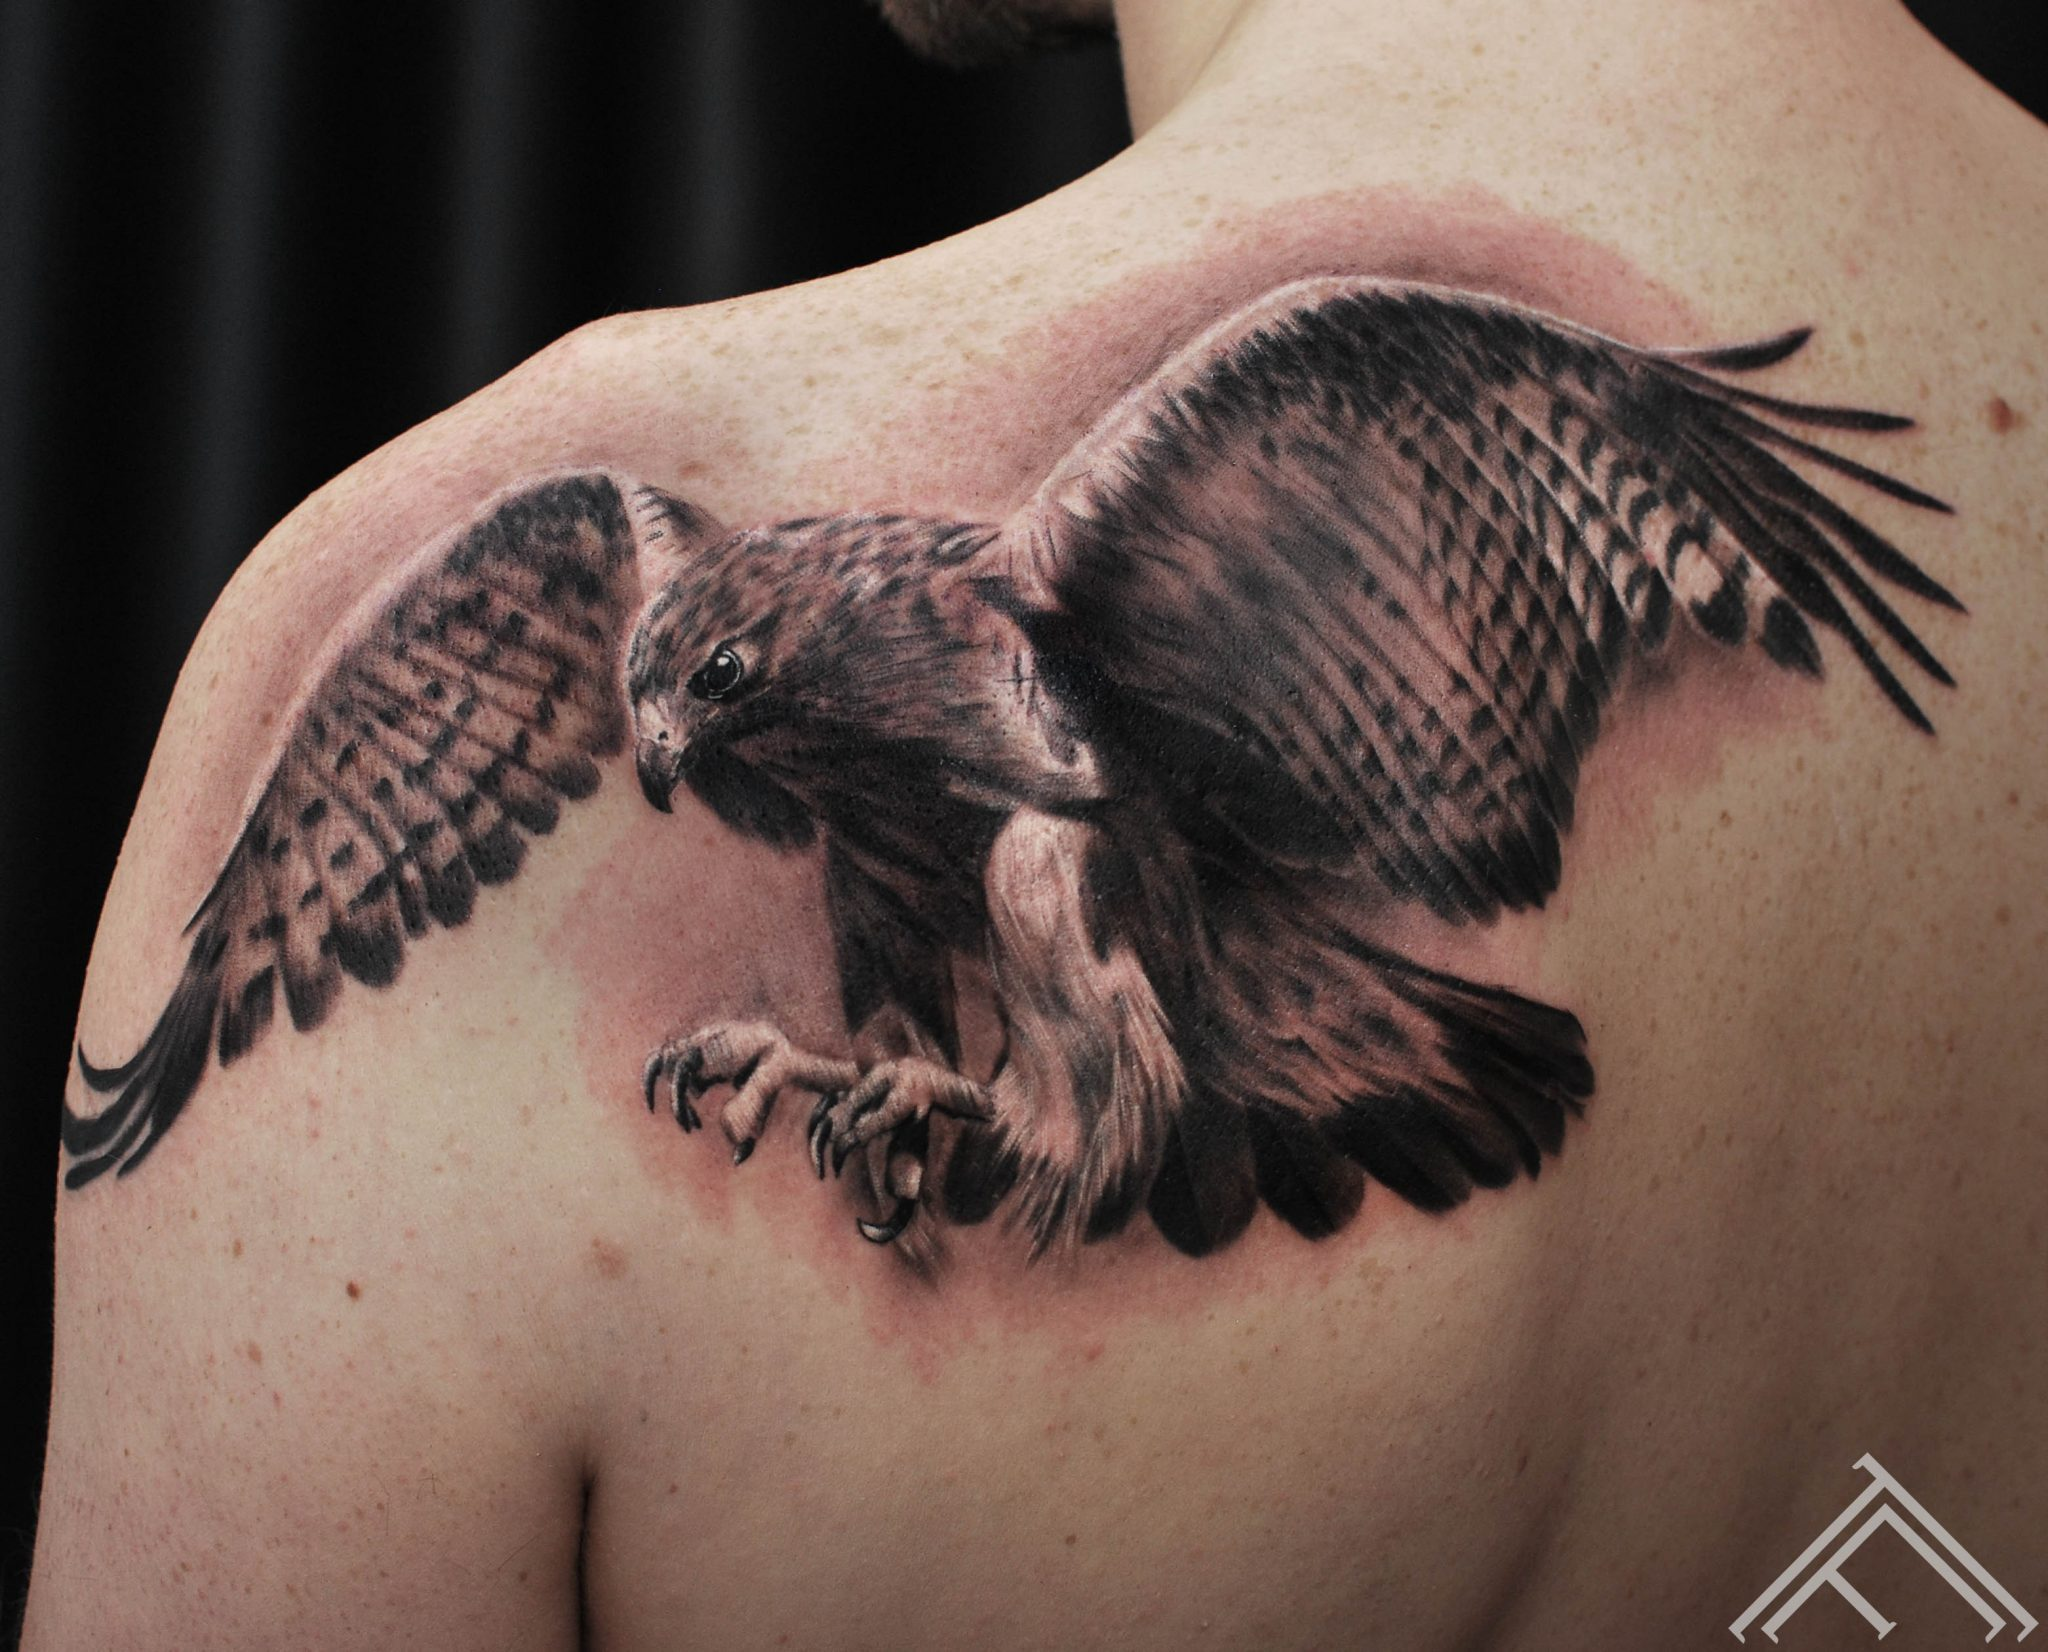 eagle-tattoo-tattoofrequency-bird-putns-janisanderson-riga